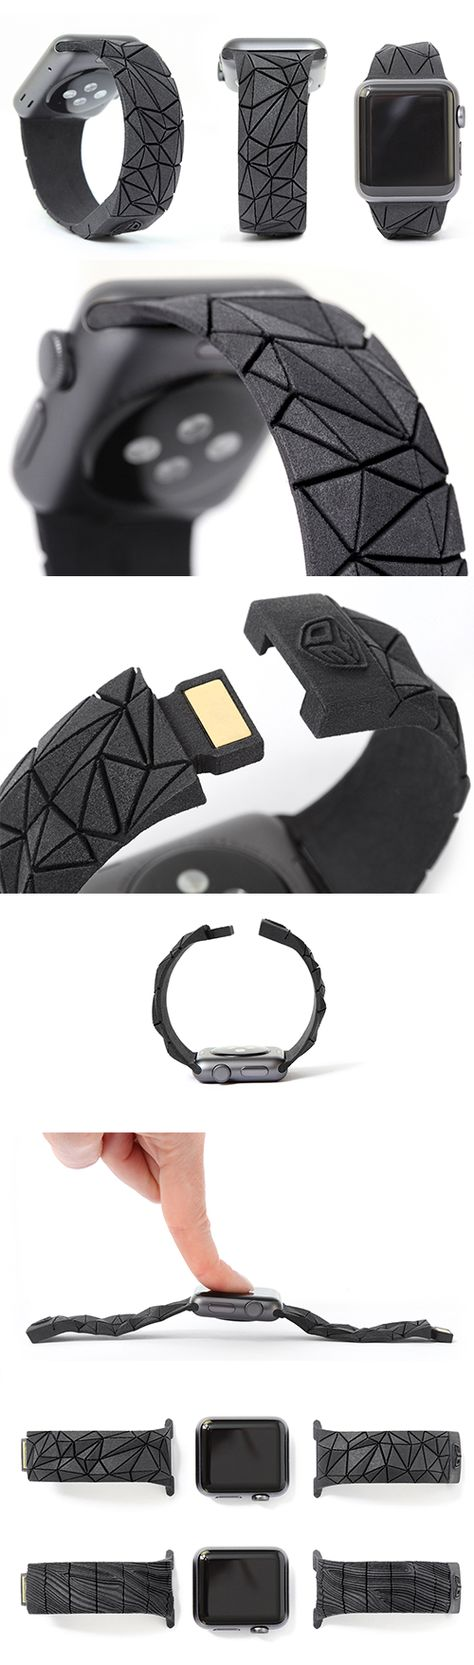 3D Printed Flex Bands for Apple Watch designed by Maria Cichy